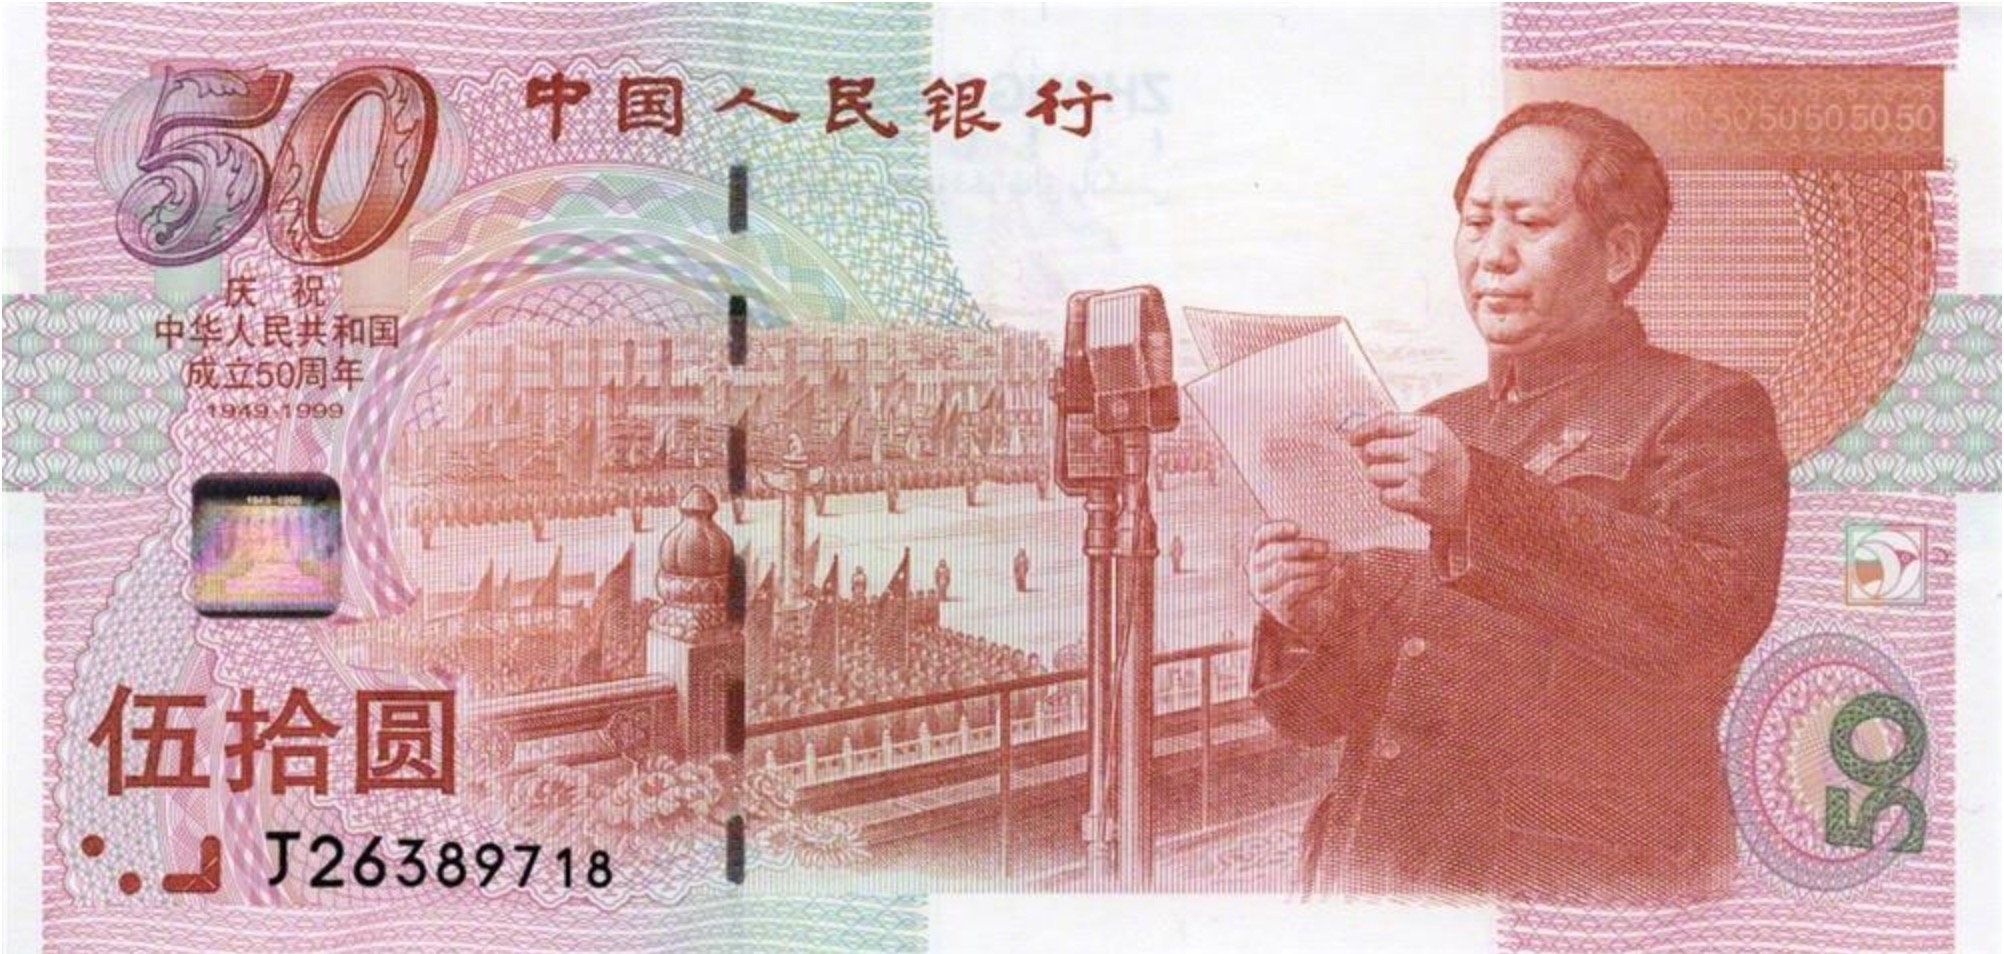 50 Chinese Yuan commemorative banknote (1999 China People's Republic 50th Anniversary)